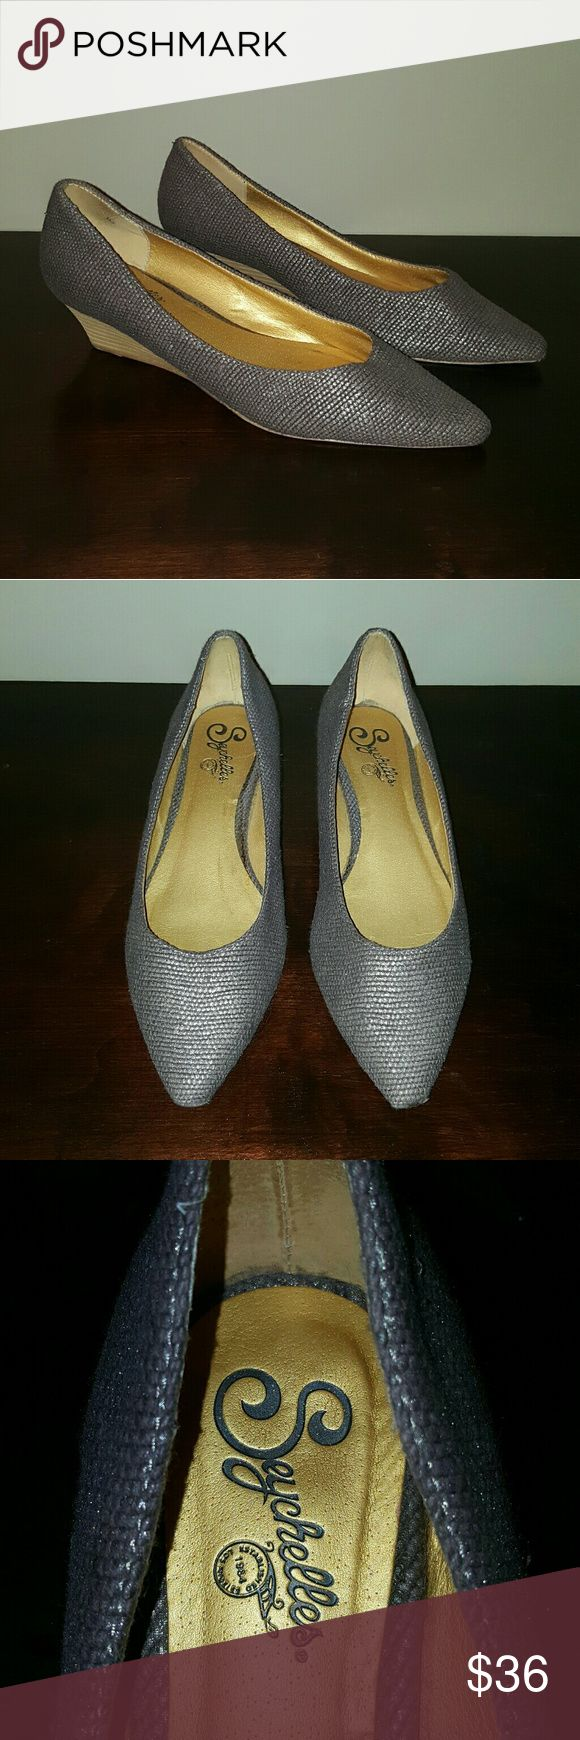 """Seychelles pointed silver metallic wedges Silver metallic stacked heel wedges. 1 1/2"""" wedge. Very light wear. Seychelles Shoes Wedges"""